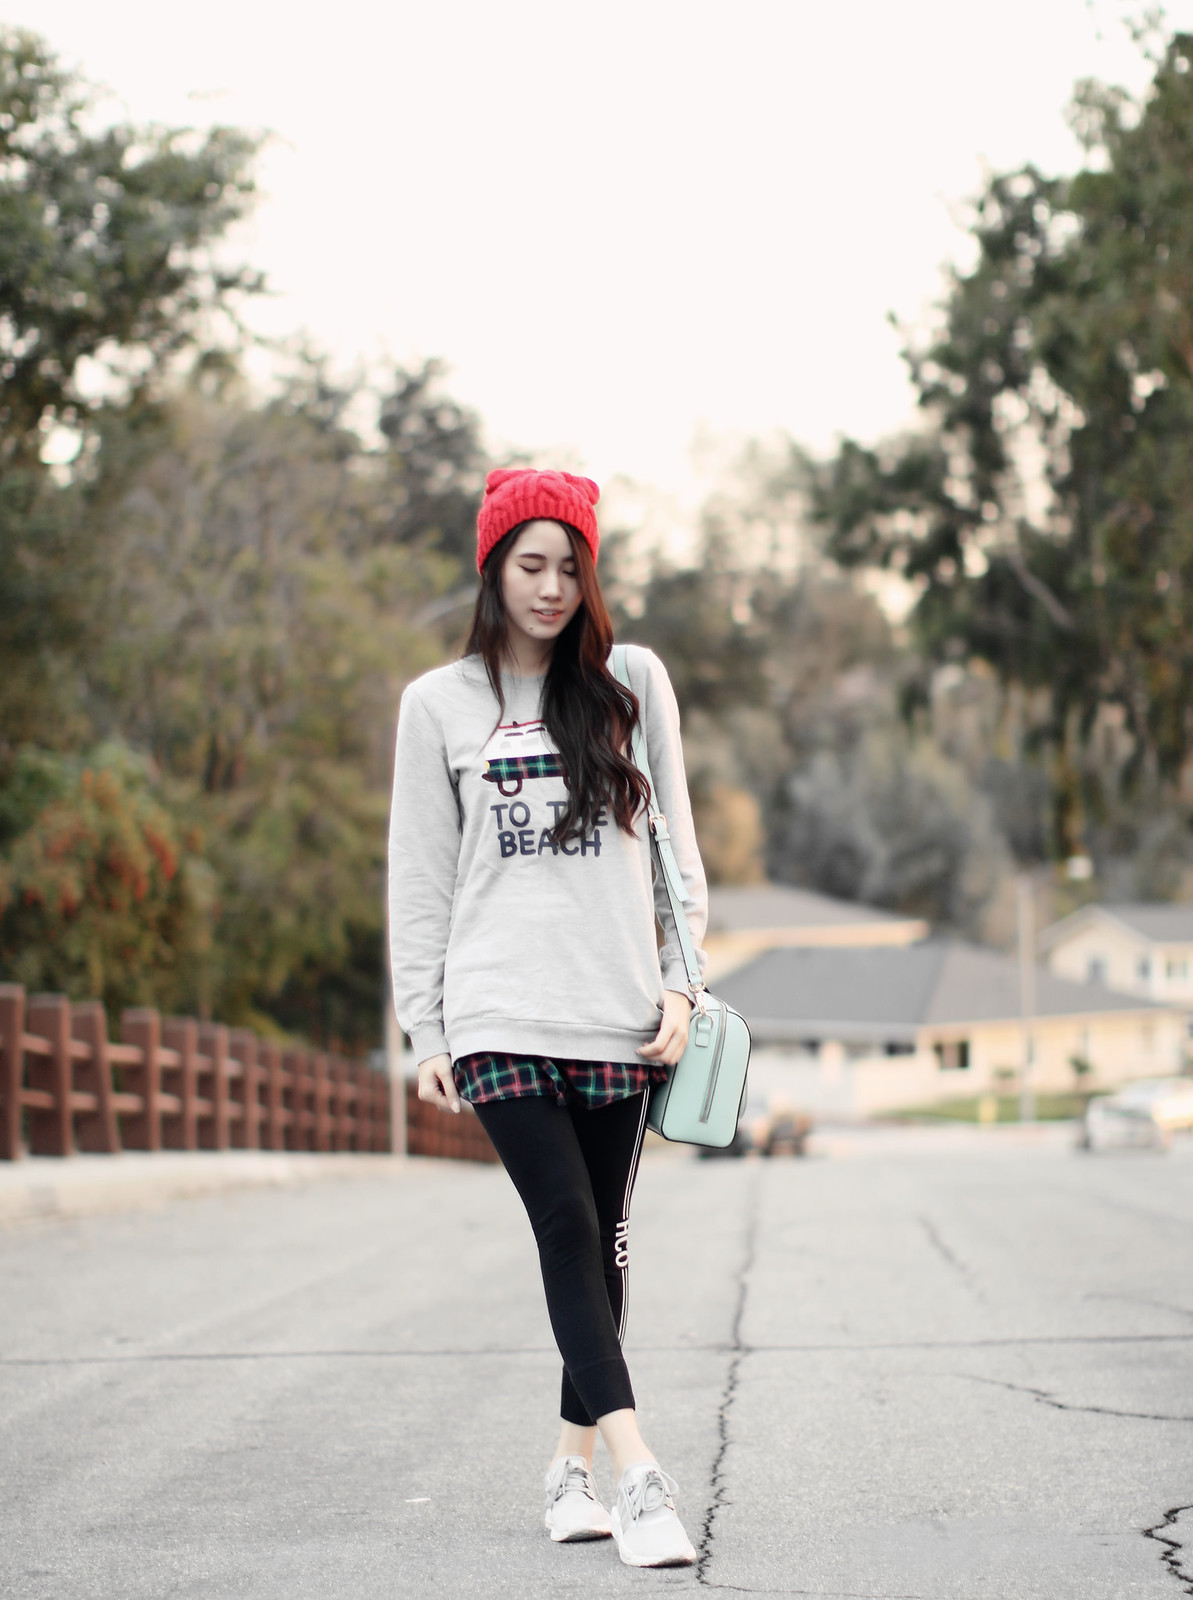 1262-ootd-sweaterdress-koreanfashion-asianfashion-korean-fall-yesstyle-sweaterweather-clothestoyouuu-blogger-elizabeeetht